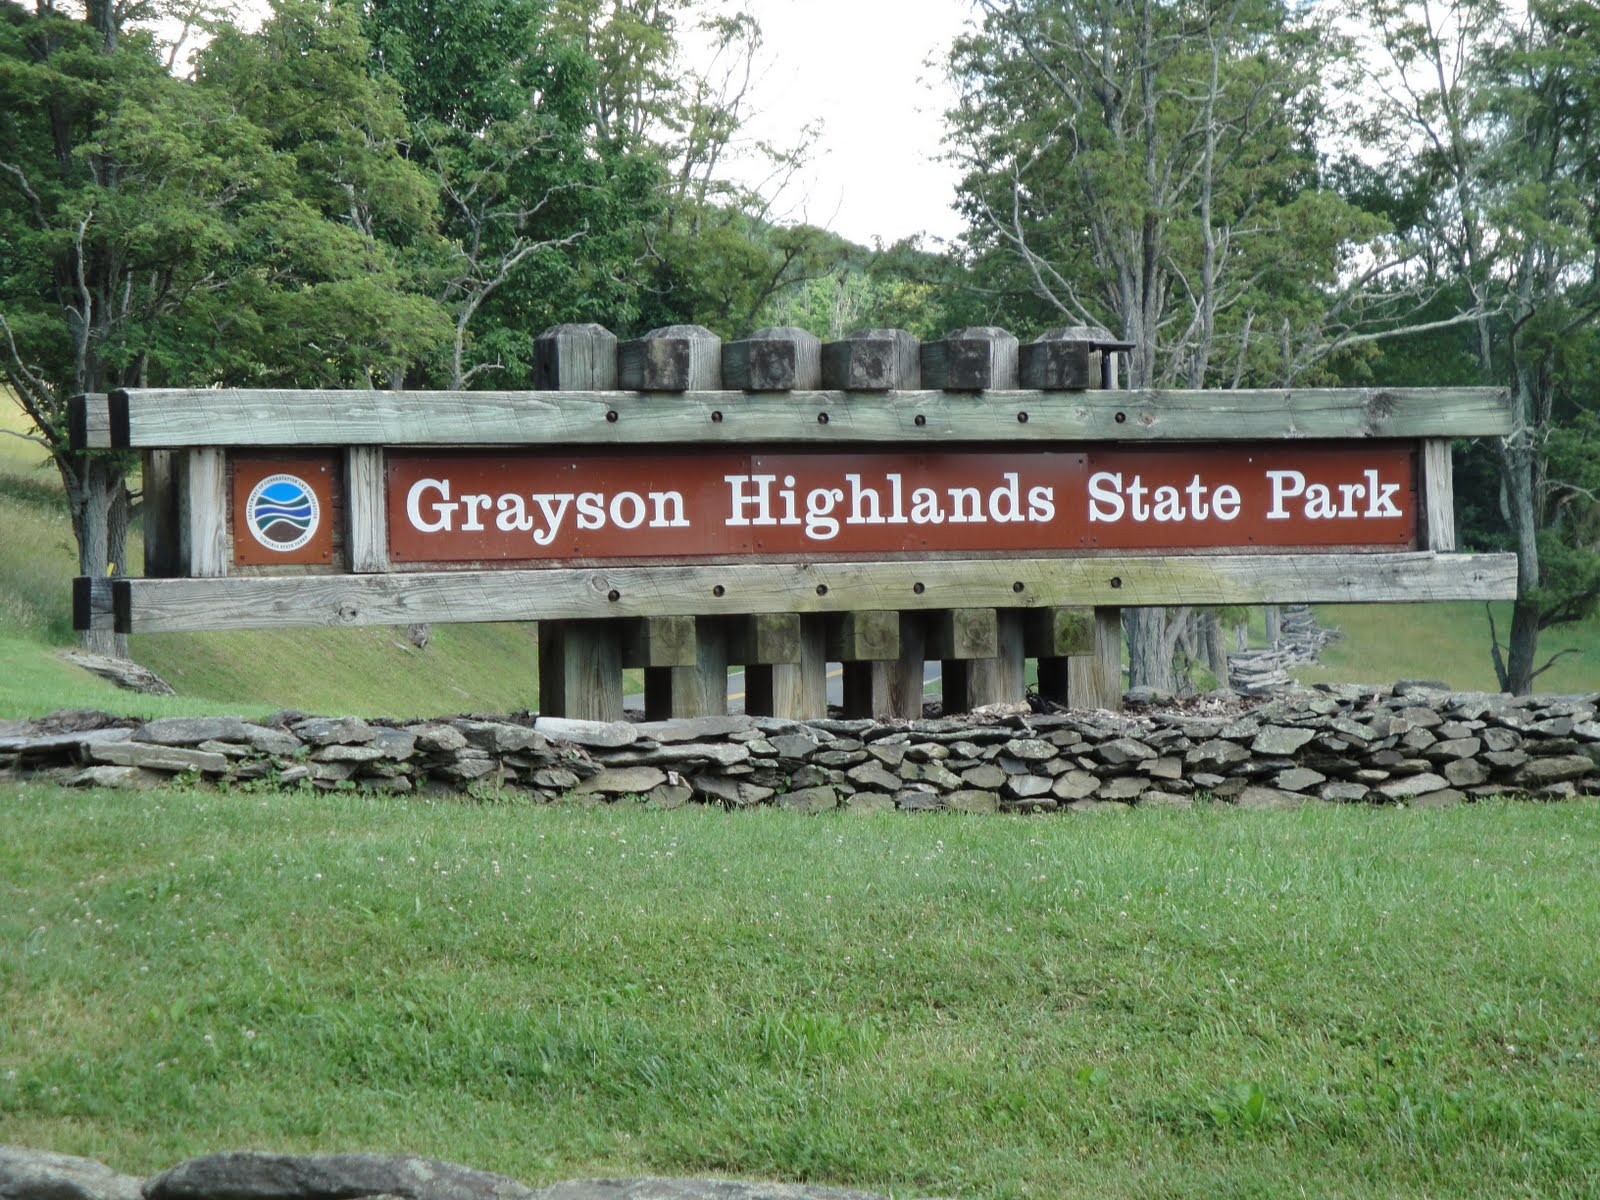 00b83ba5f Gone Hikin': Grayson Highlands State Park and Mount Rogers (Mouth of ...